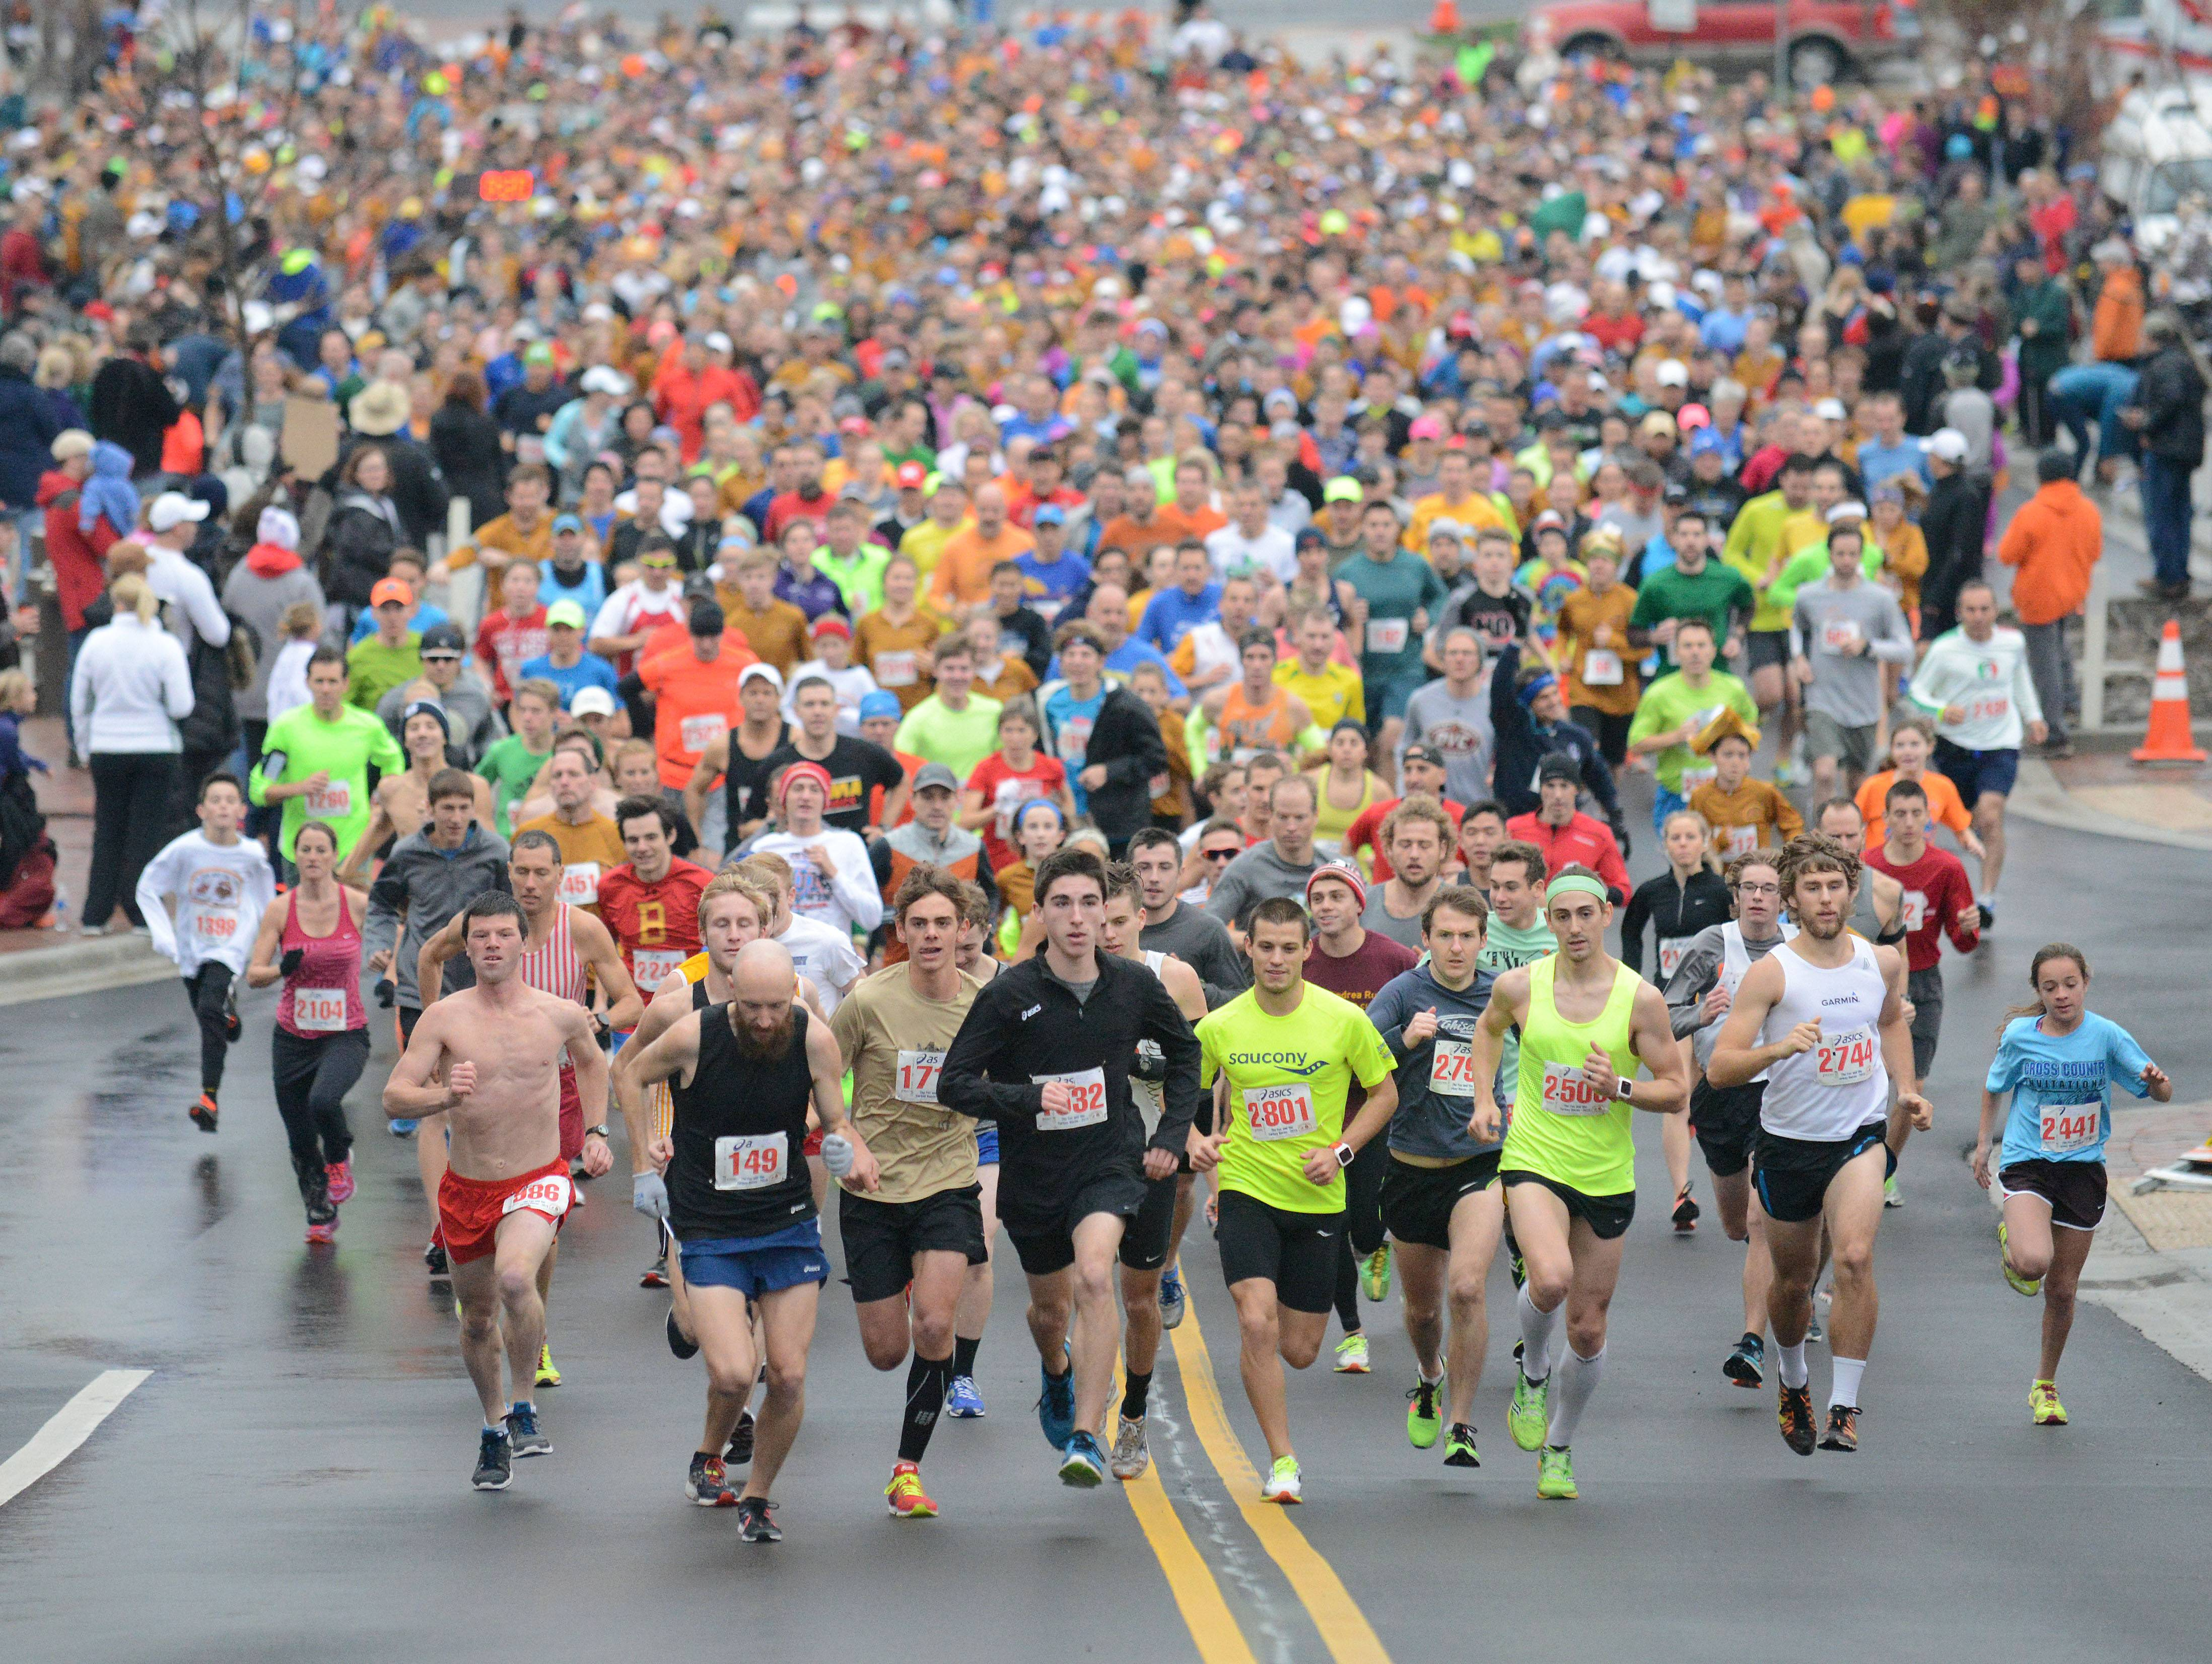 Runners take off west on Houston Street in the 4K The Fox & The Turkey Races Thanksgiving morning in downtown Batavia. The 2,820 runners were the most in 19 years, said Tom Spadafora, president of the host Fox River Trail Runners.